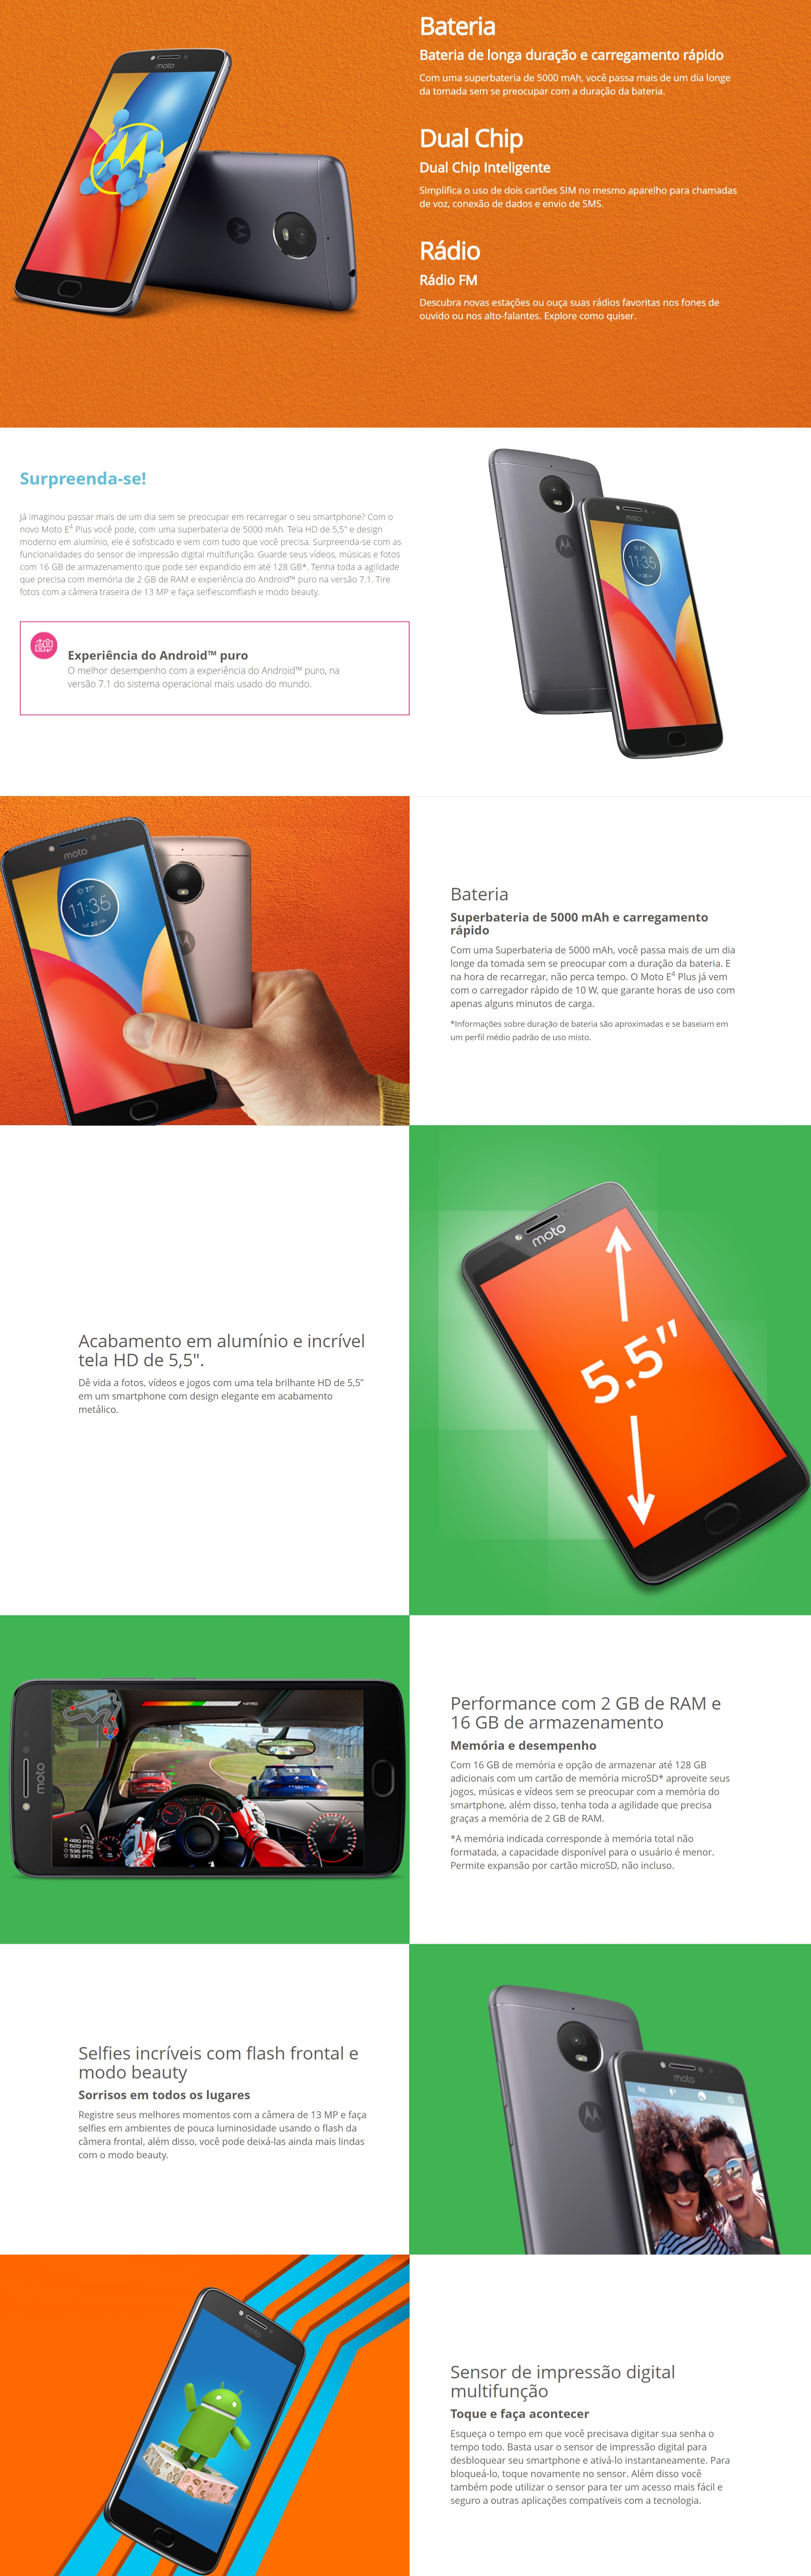 Recursos do Smartphone Motorola Moto E4 16GB Dual Chip 4G Tela 5 Câmera 13MP Selfie 5MP Android 7.1